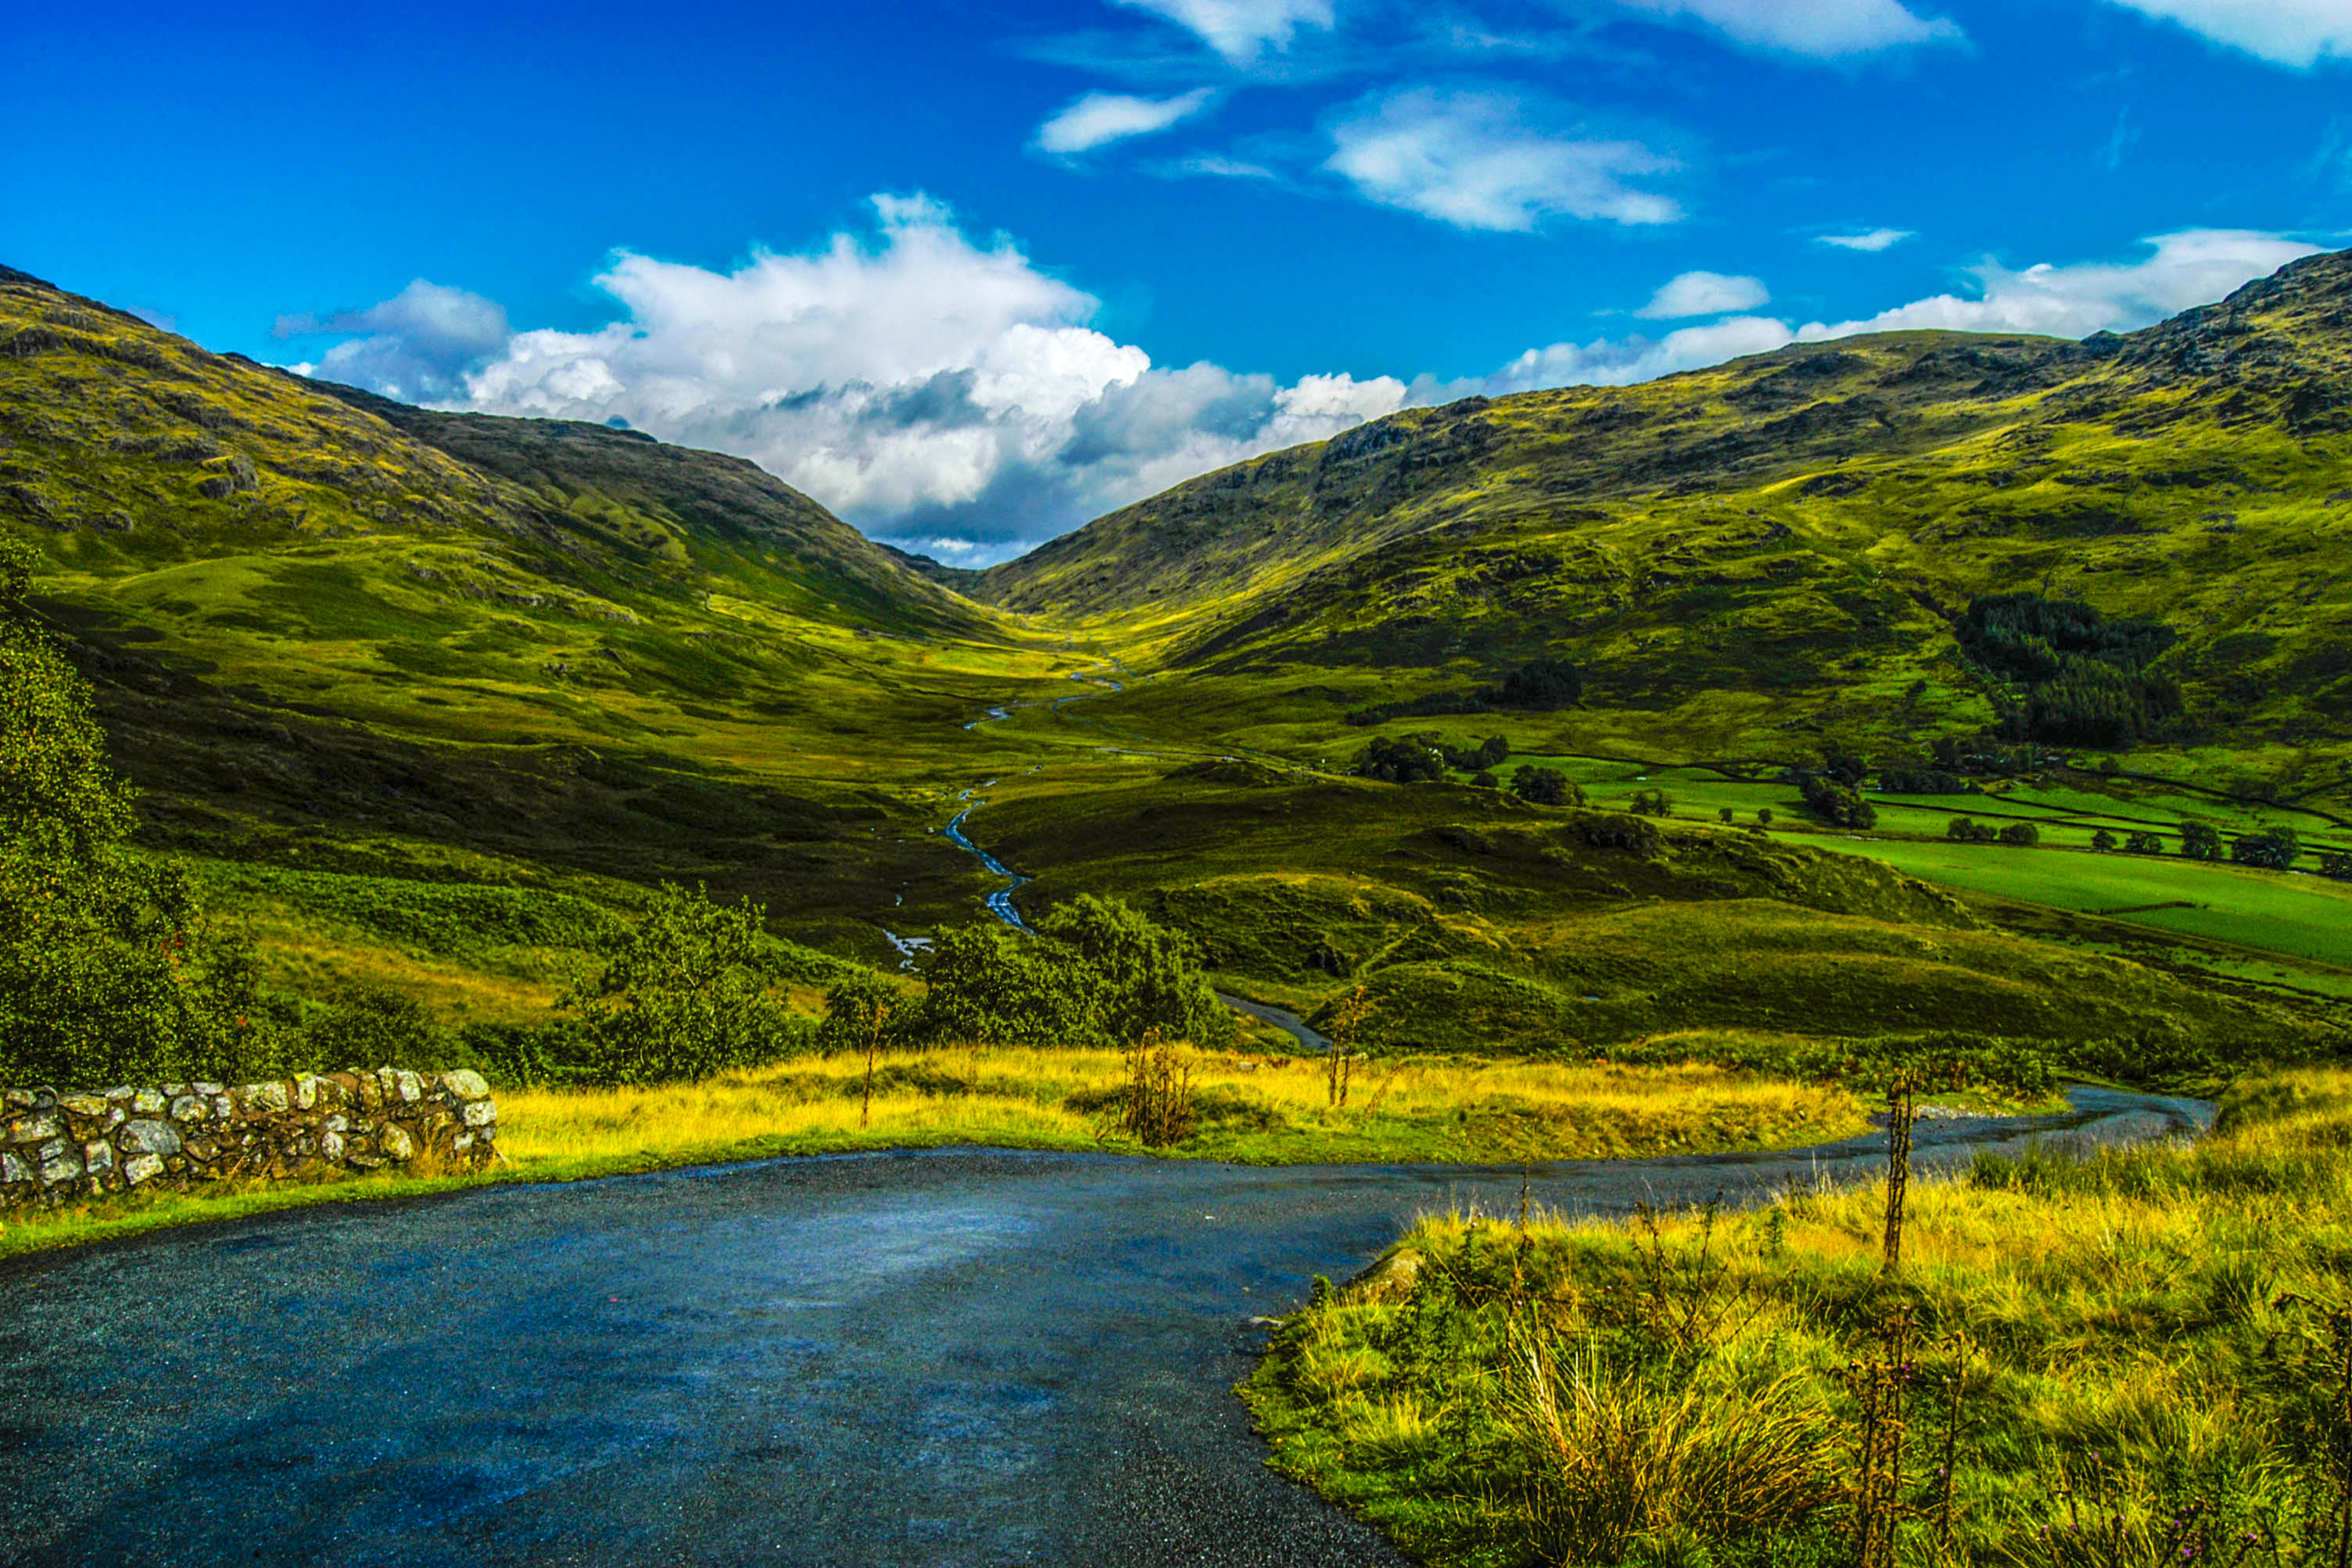 Landscape Photography of Mountains and River